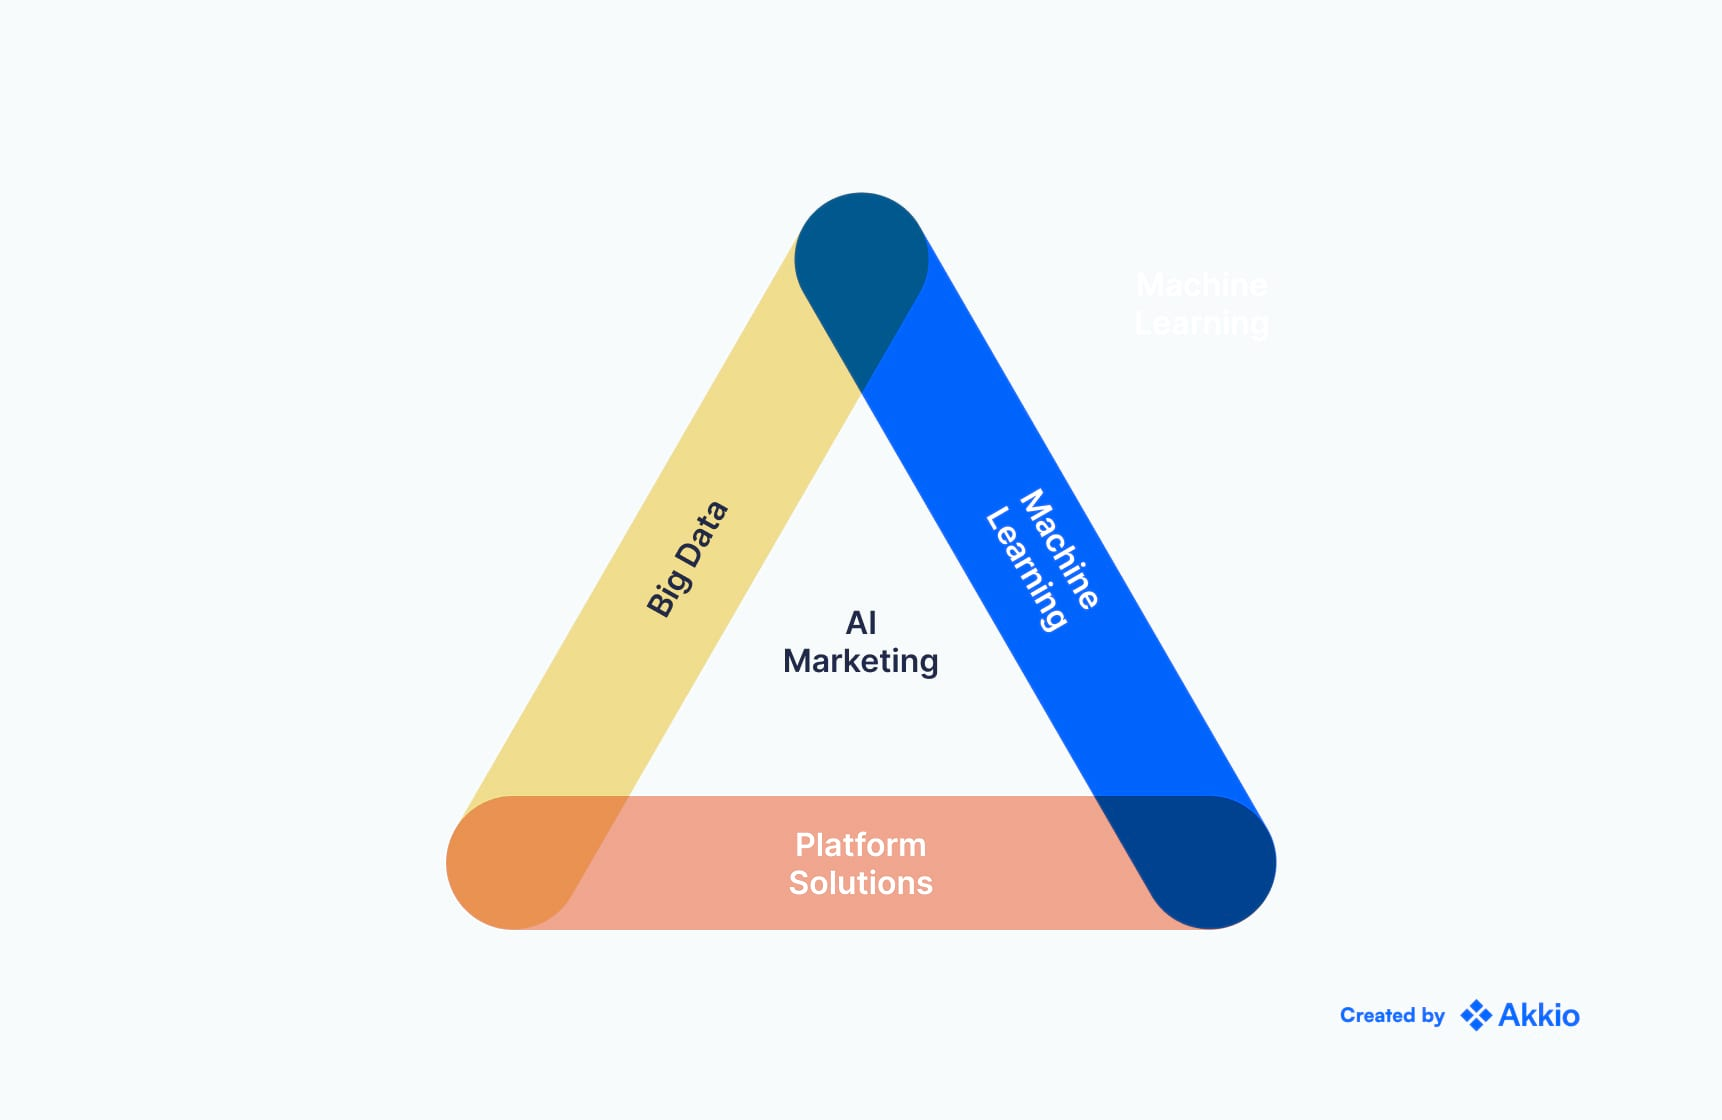 A graphic depicting three overlapping facets of AI marketing: Big data, platform solutions, and machine learning.